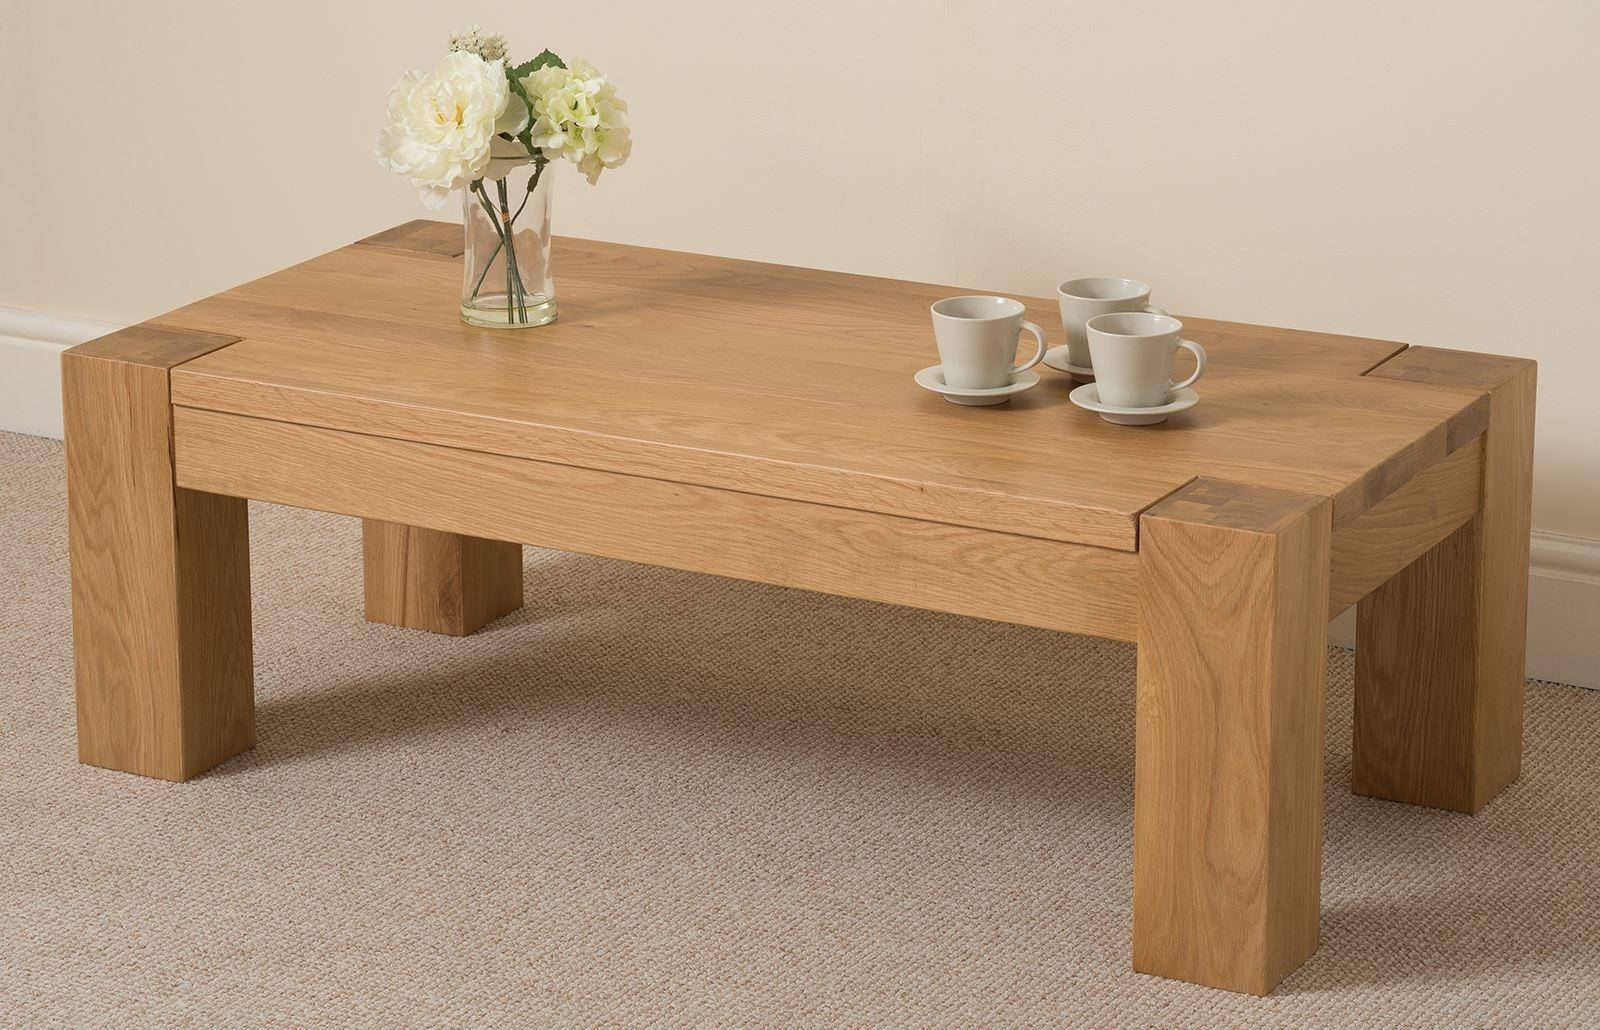 Kuba Solid Oak Large Coffee Table | Oak Furniture King pertaining to Oak Wood Coffee Tables (Image 10 of 15)